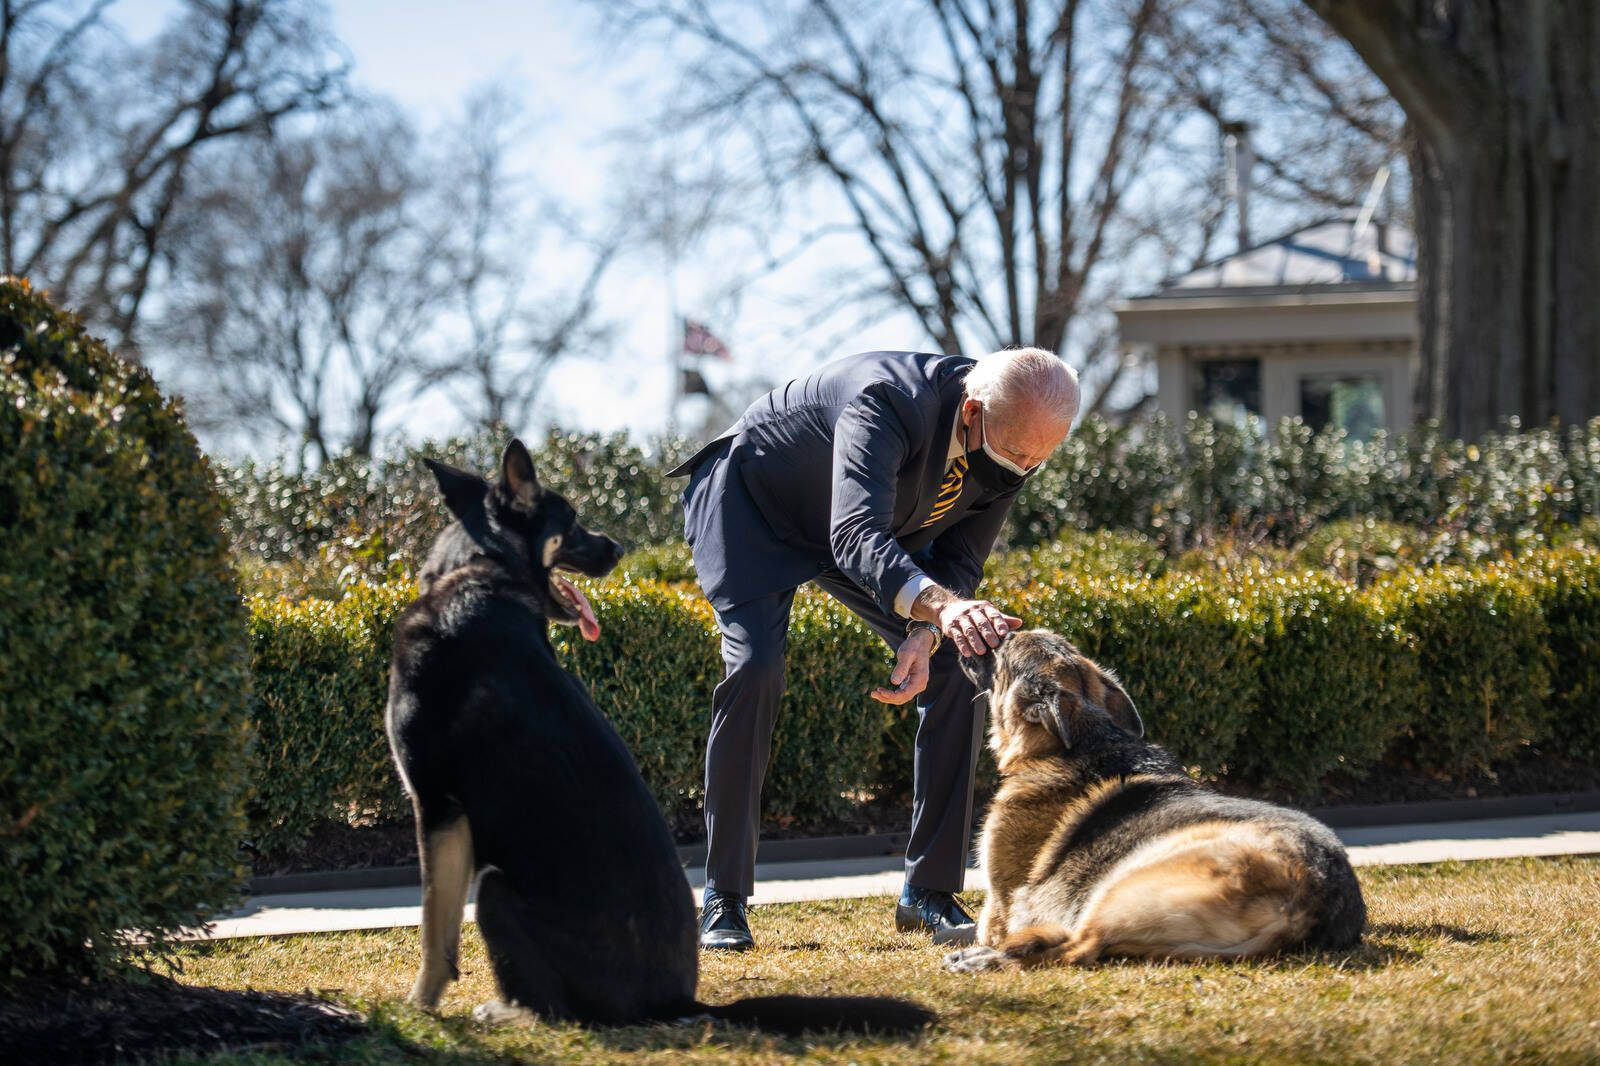 Feb 24, 2021 - Washington, District of Colombia, USA - President Joe Biden plays with the Biden family dogs Champ and Ma